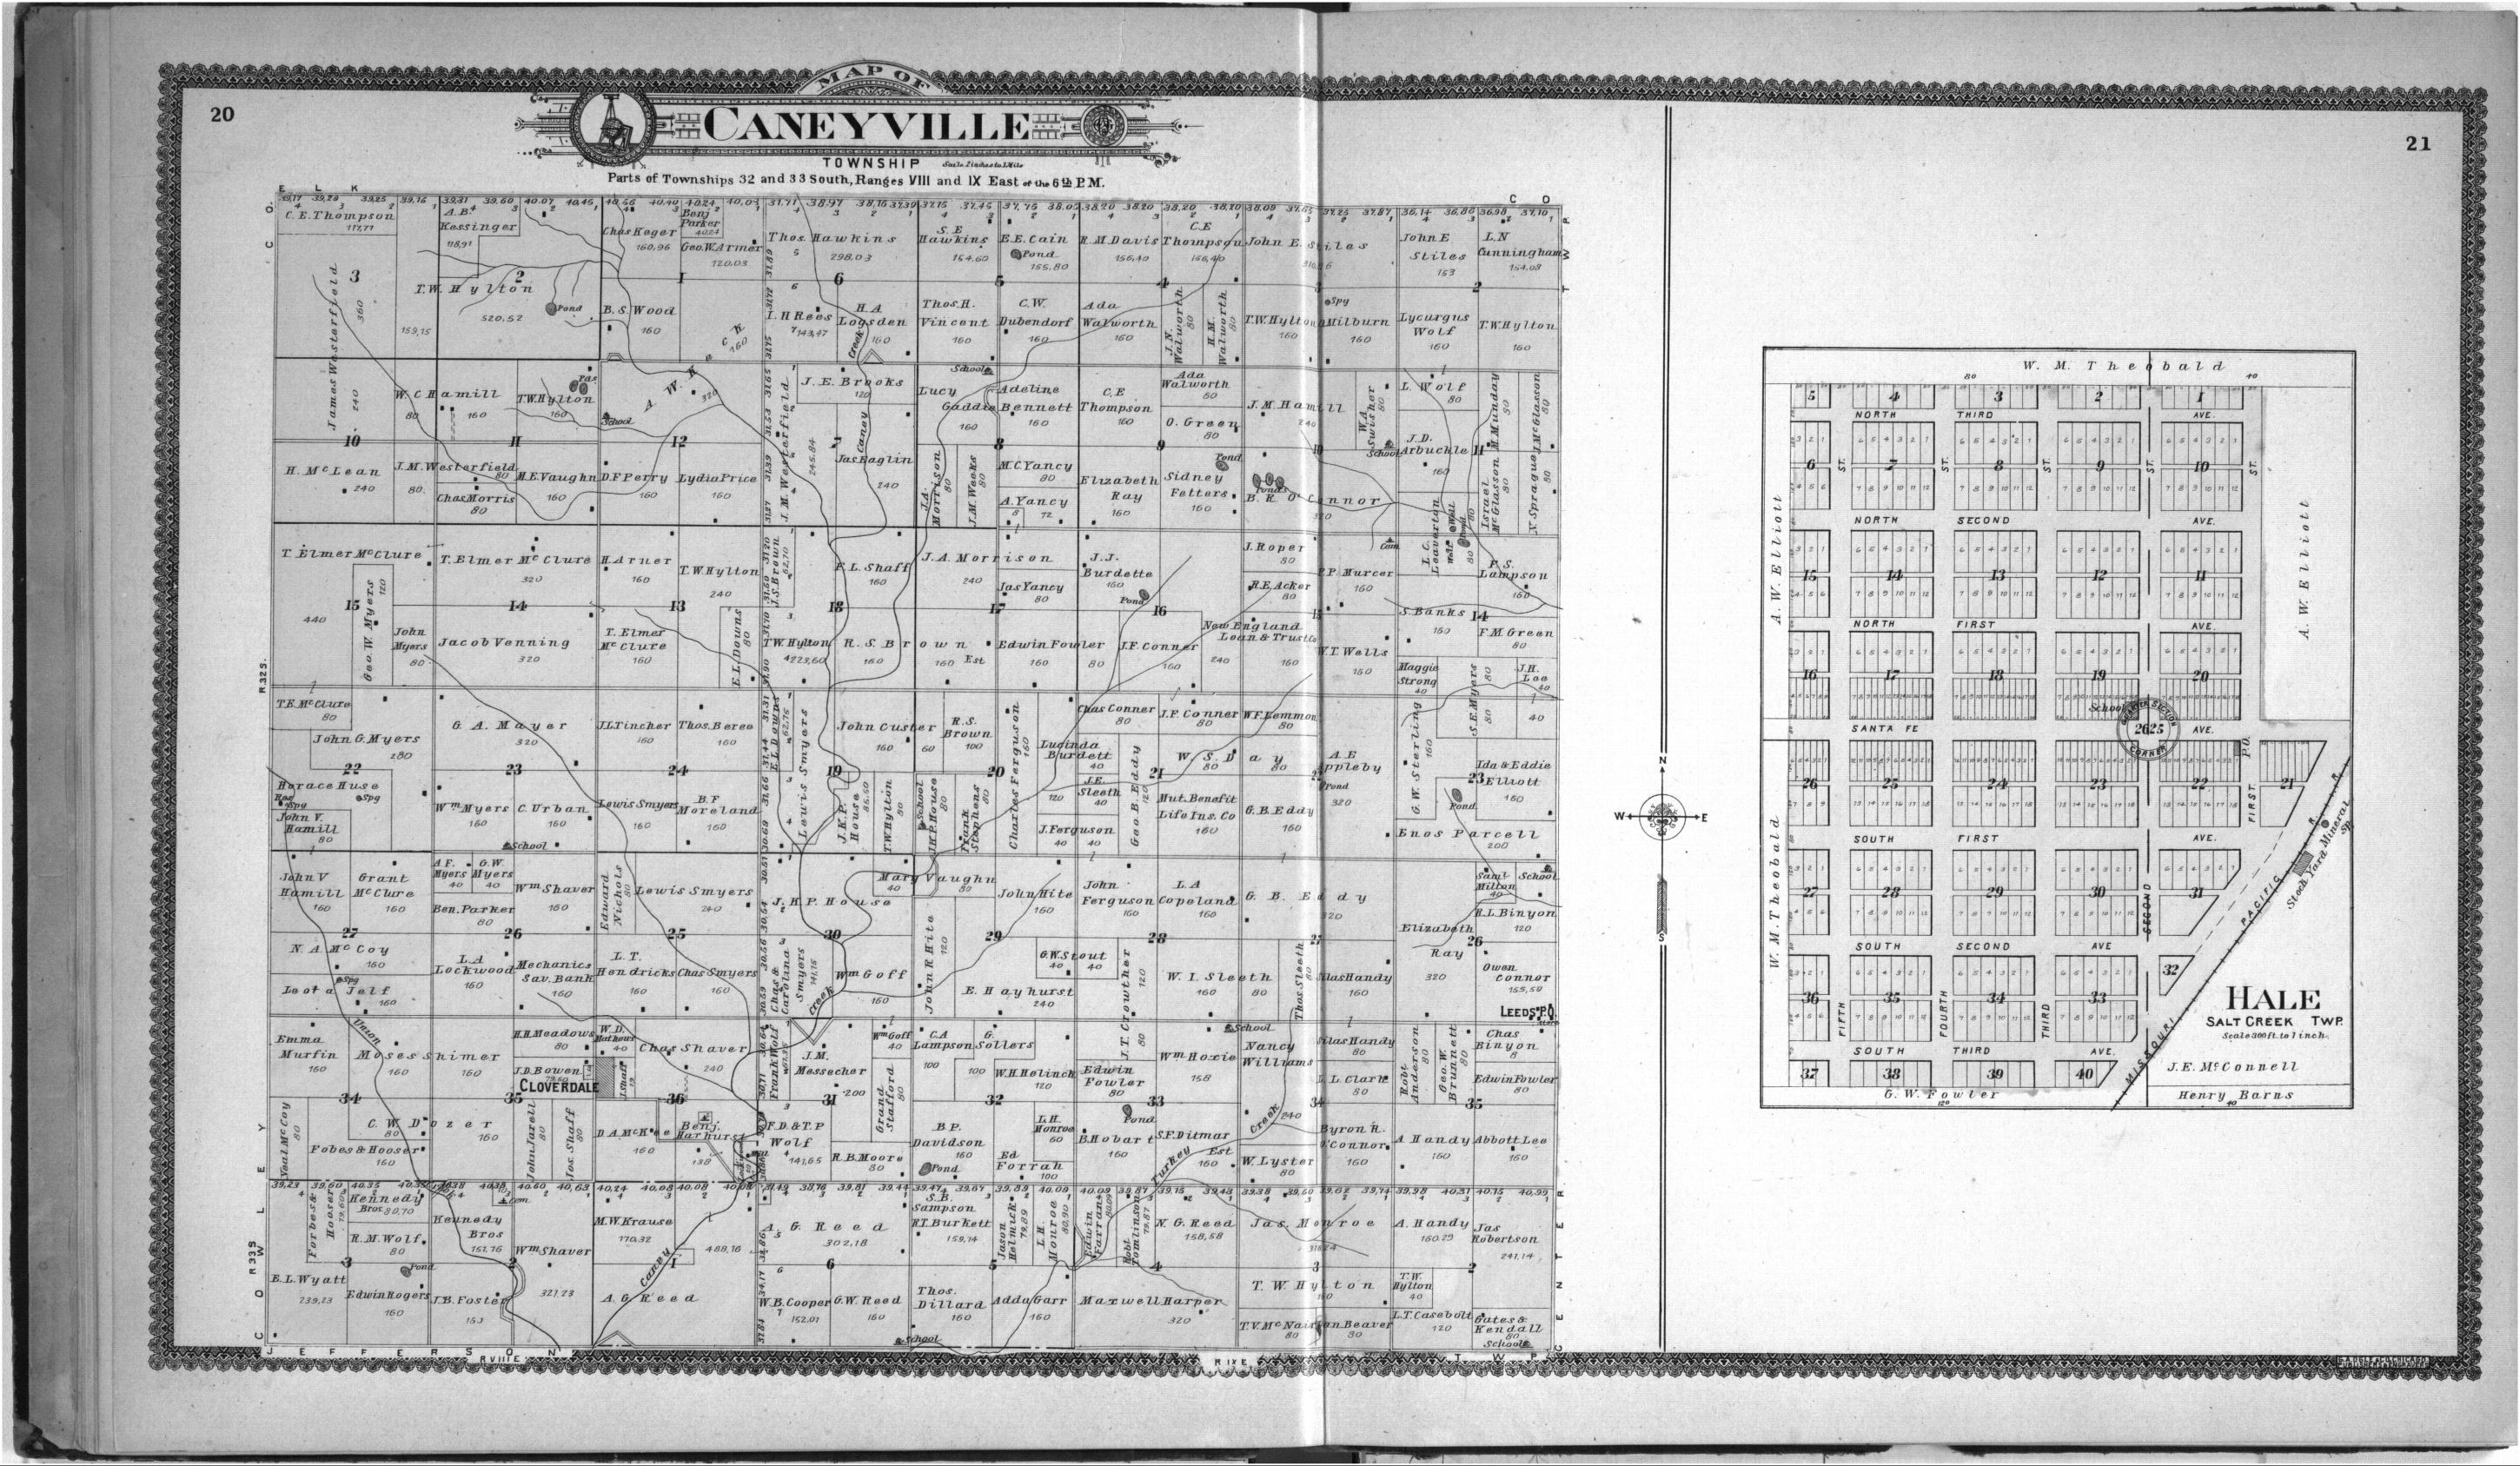 Standard atlas of Chautauqua County, Kansas - 20 & 21